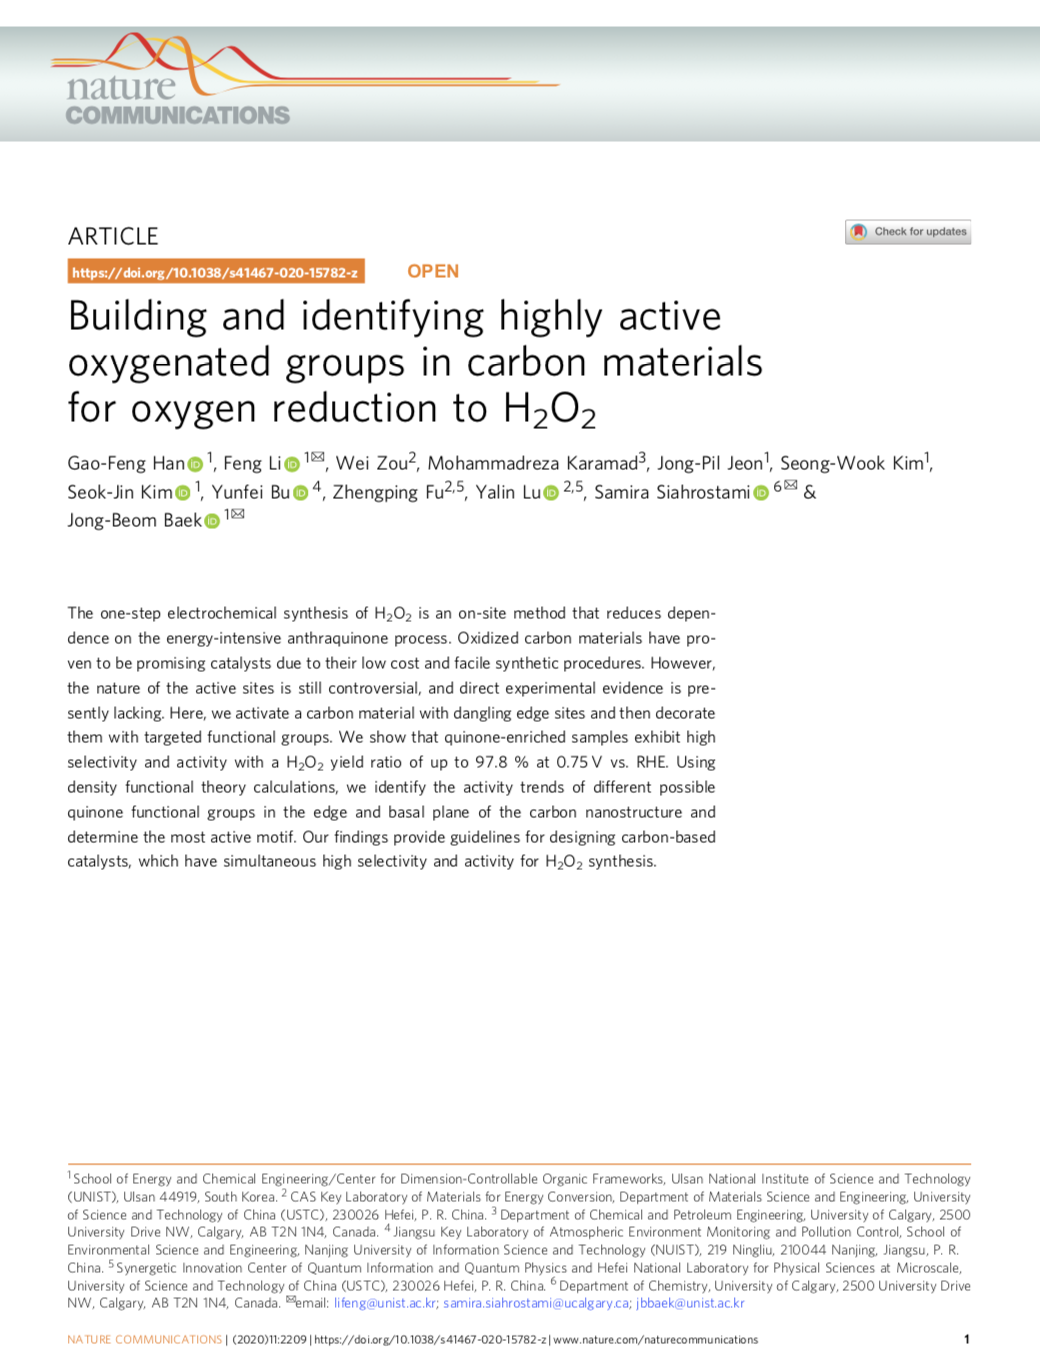 Building and identifying highly active oxygenated groups in carbon materials for oxygen reduction to